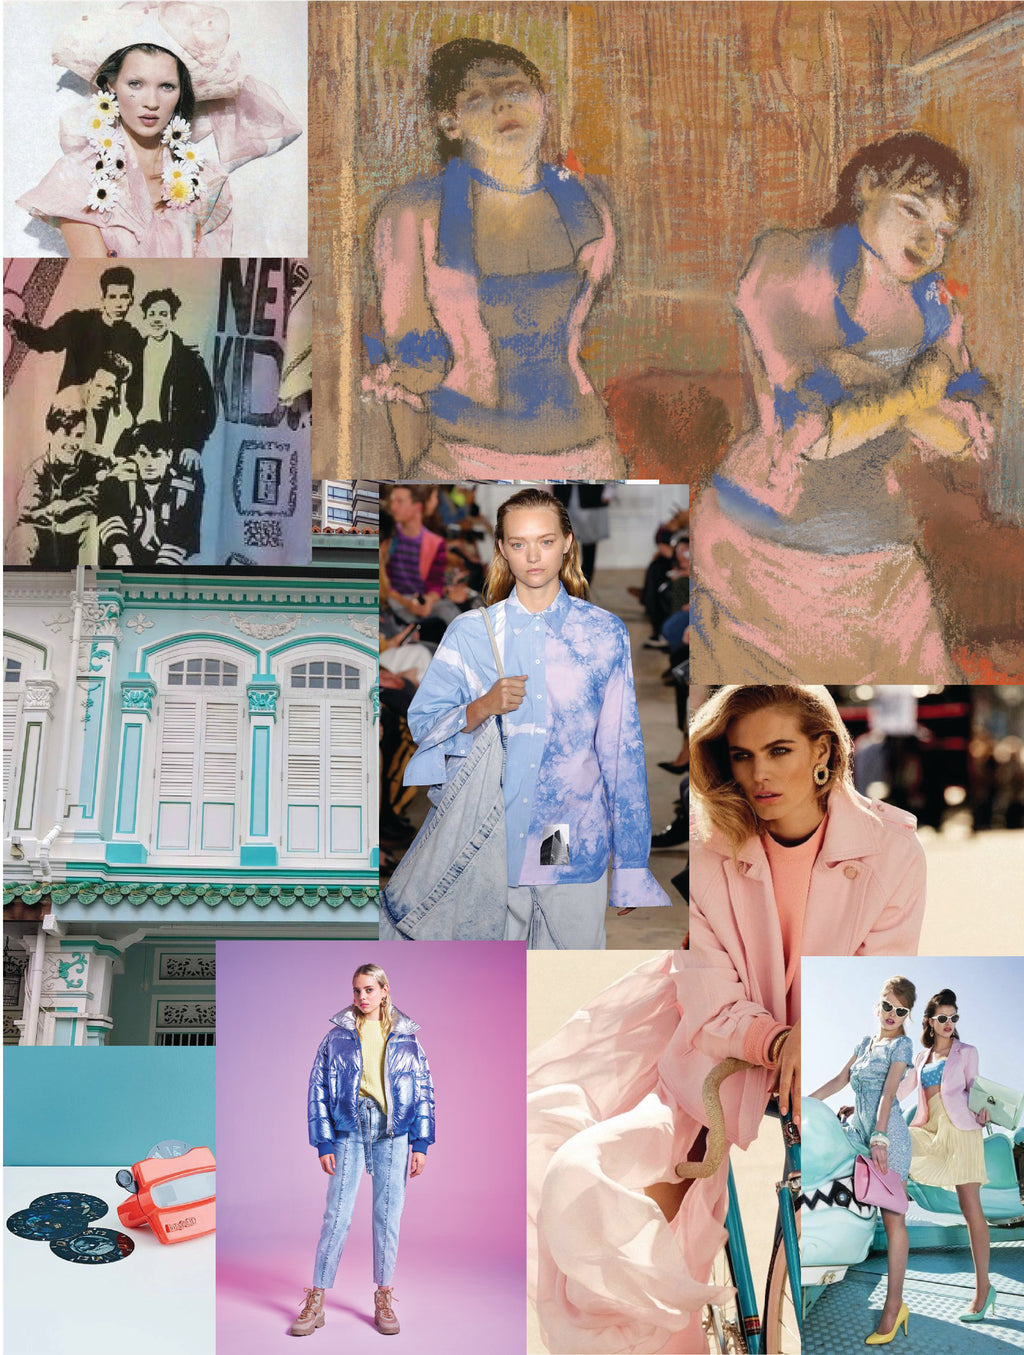 90's Pastel Fever: An Exploration of Nostalgia